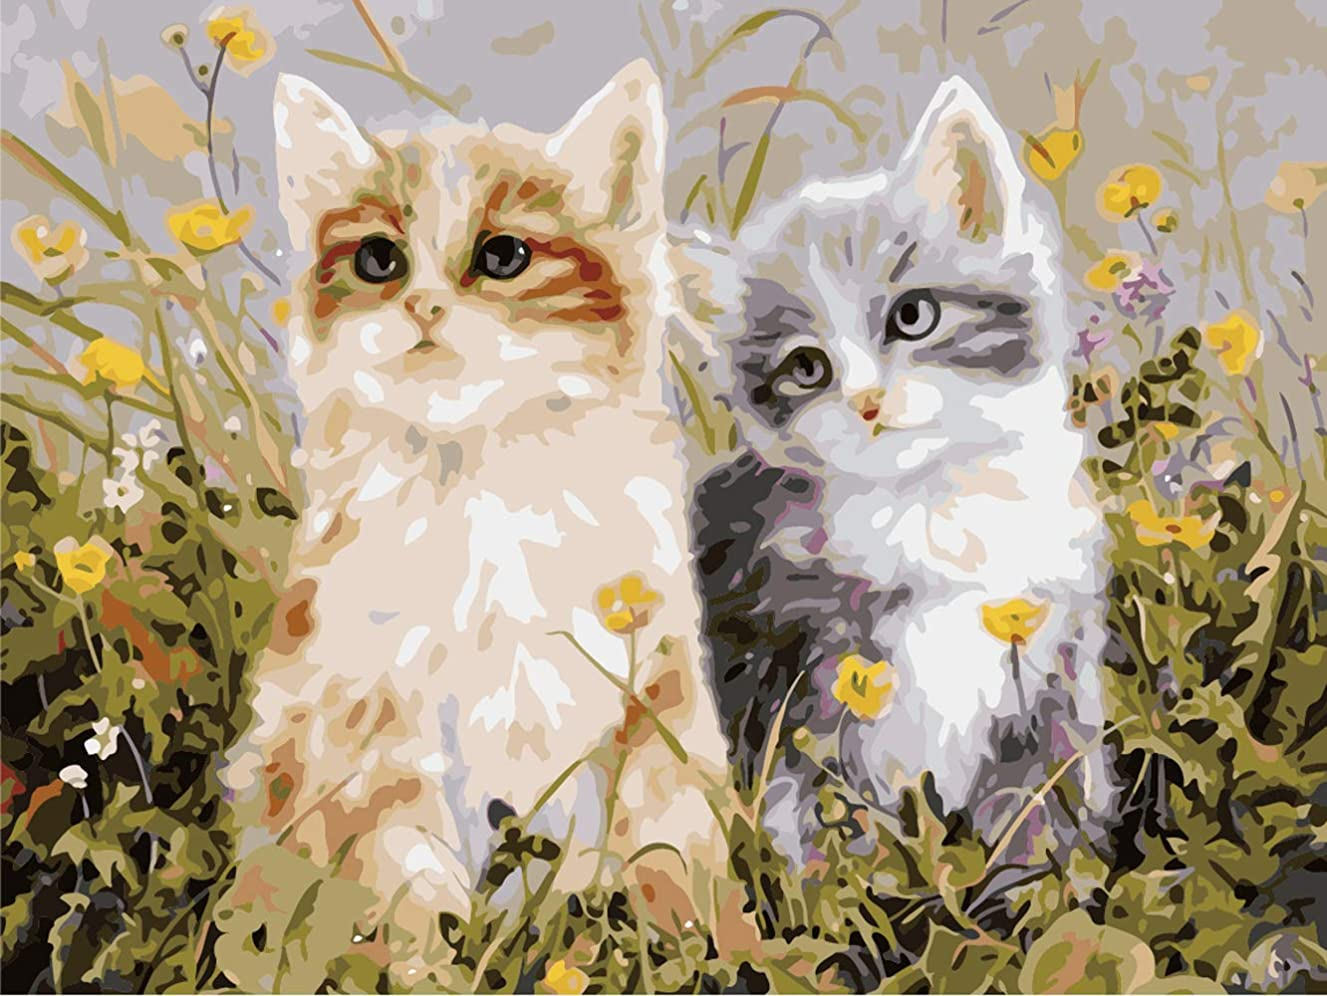 DIY Oil Painting, Paint by Number Kit for Kids, Students, Adults Beginner-16 by 20-inch (Frameless, Two Cats)